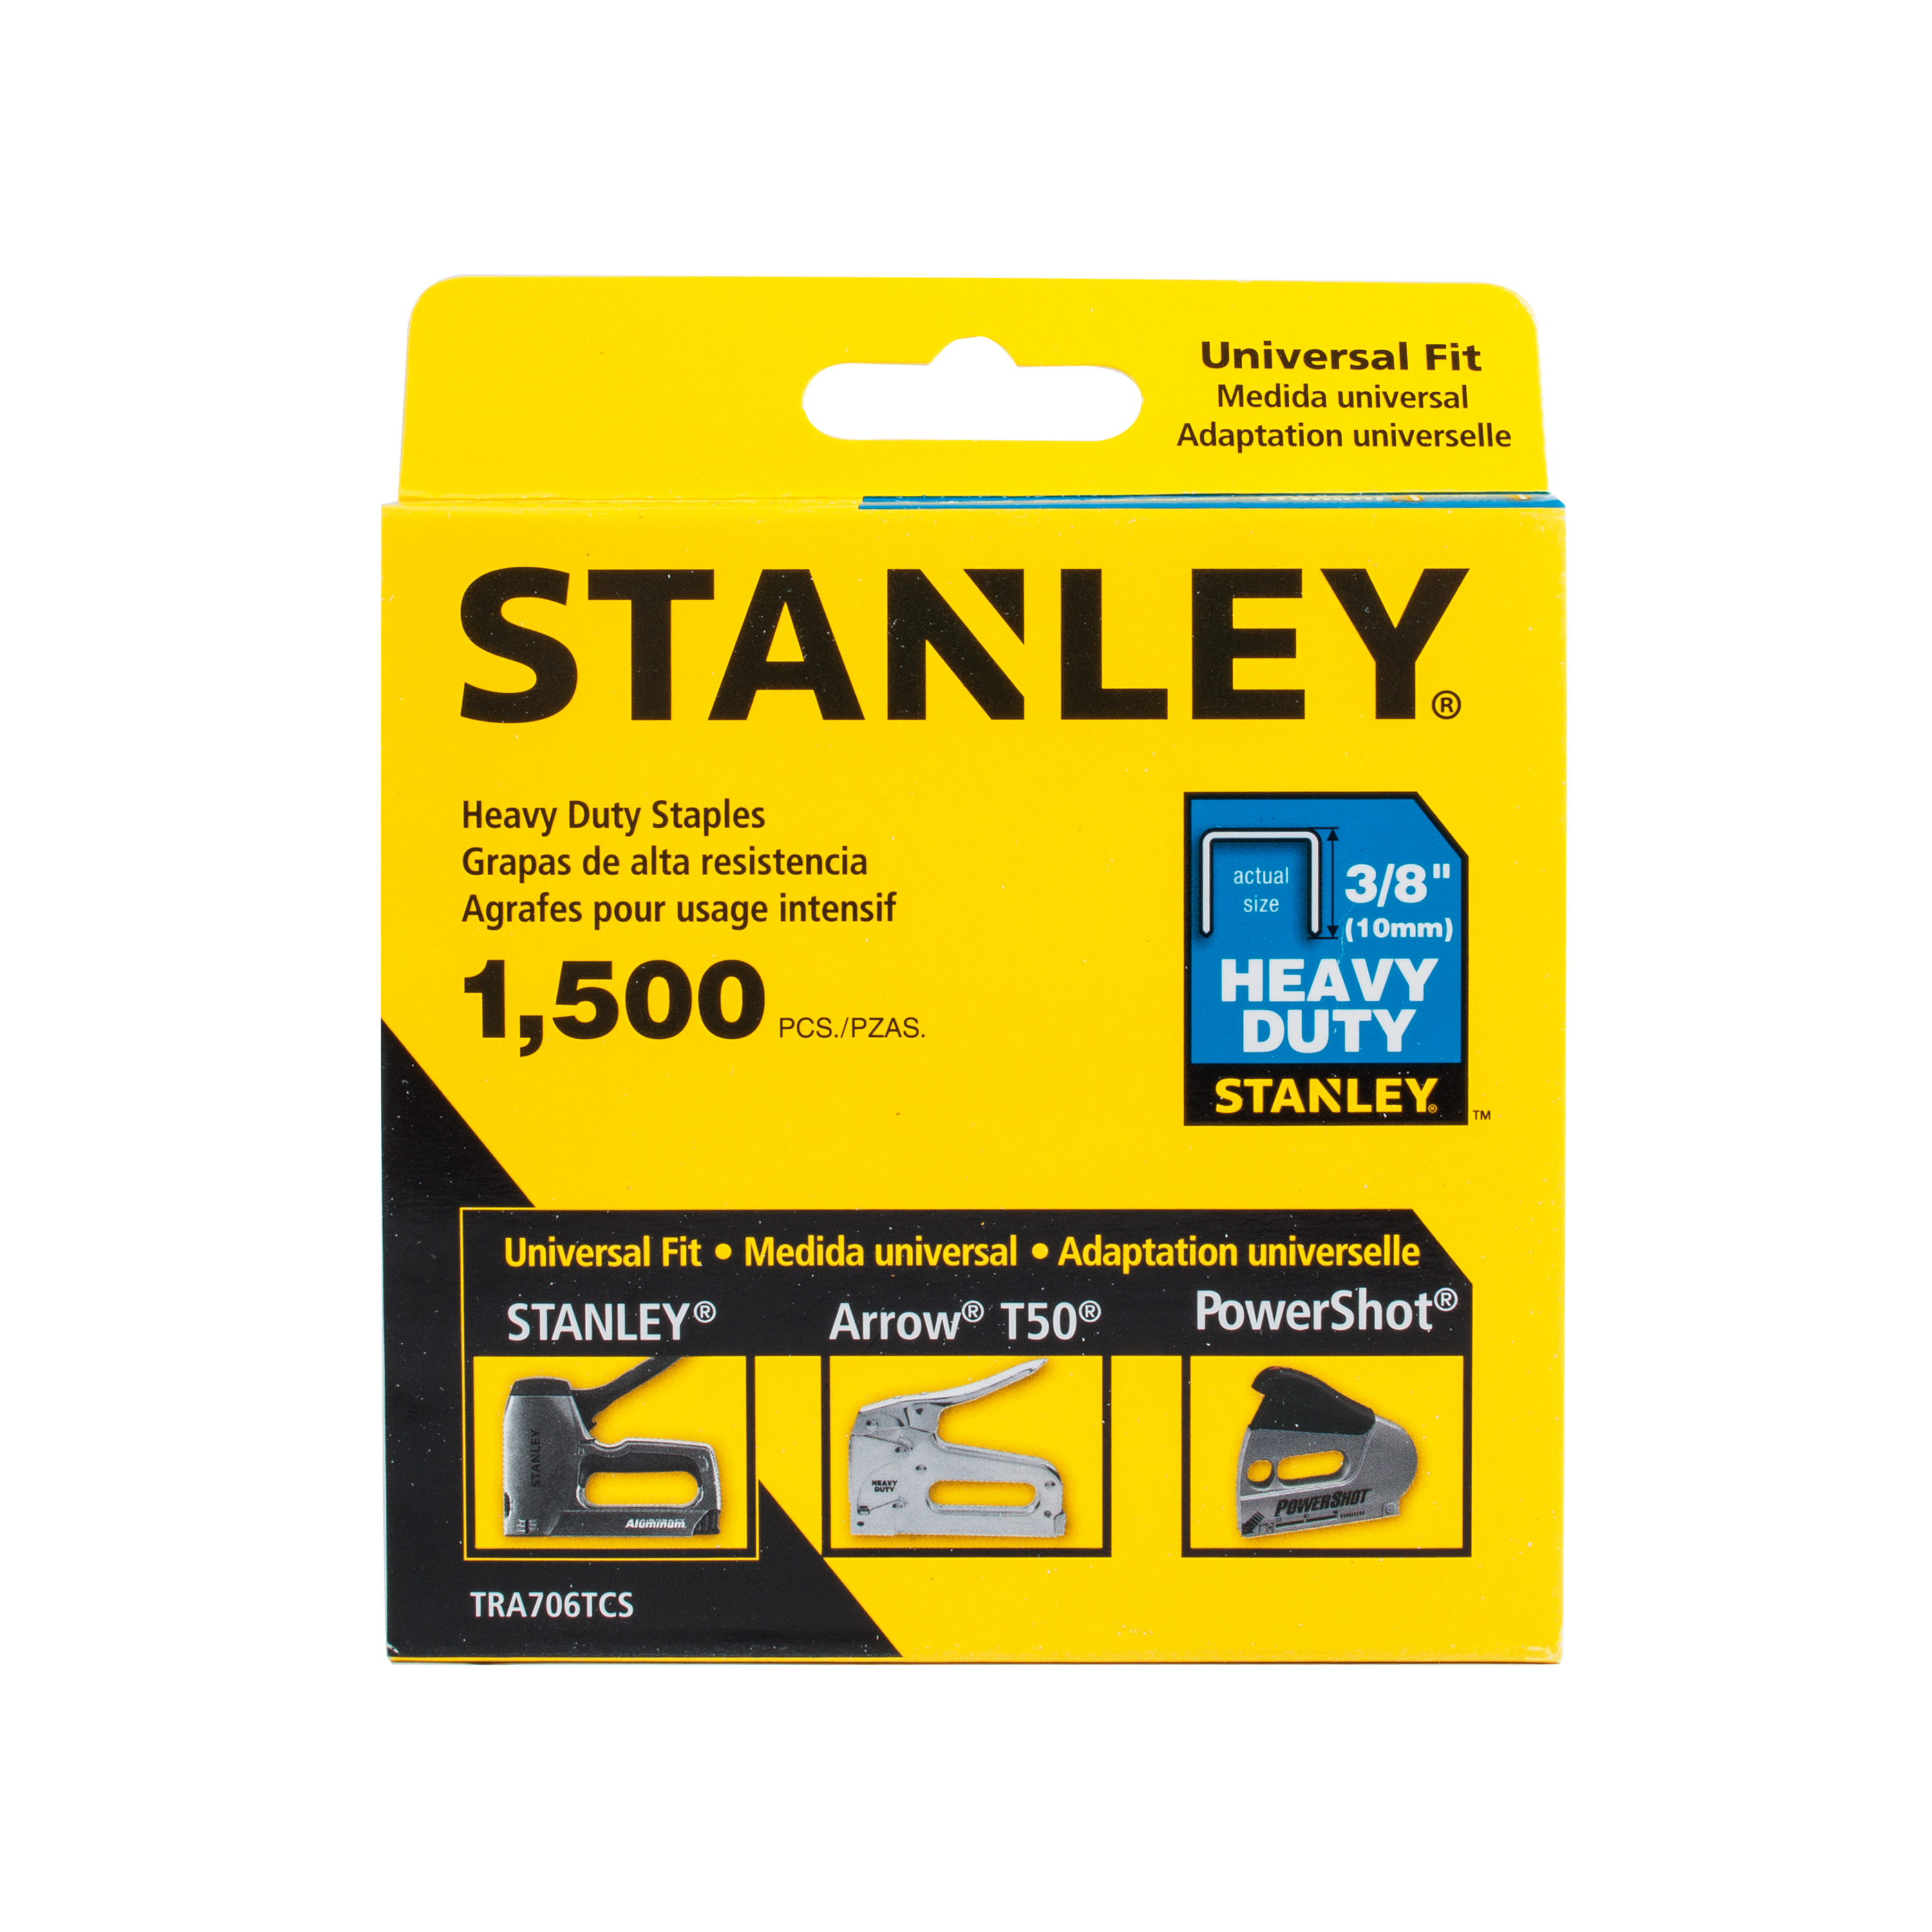 "STANLEY TRA706TCS 3/8"" Heavy-Duty Staples, 1500 Count"